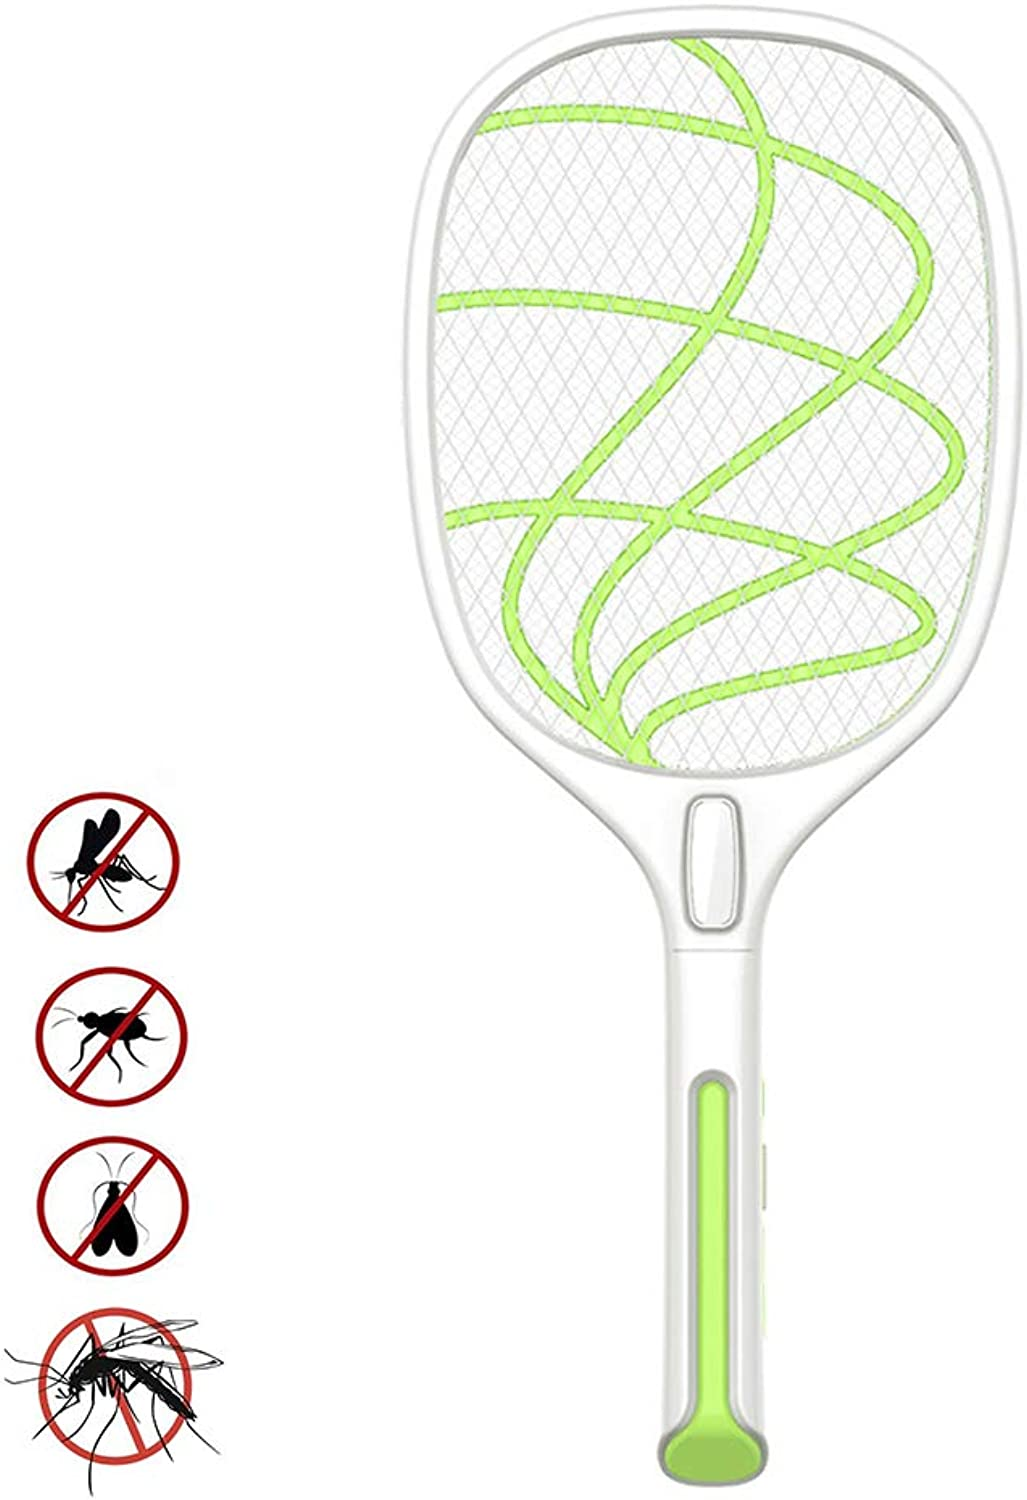 Electric Mosquito Killer, pest Control Tennis Racket, Handheld Mosquito net, USB Charging, Mosquito swatter, Insect Insect Control Killer Mosquito Repellent,Green